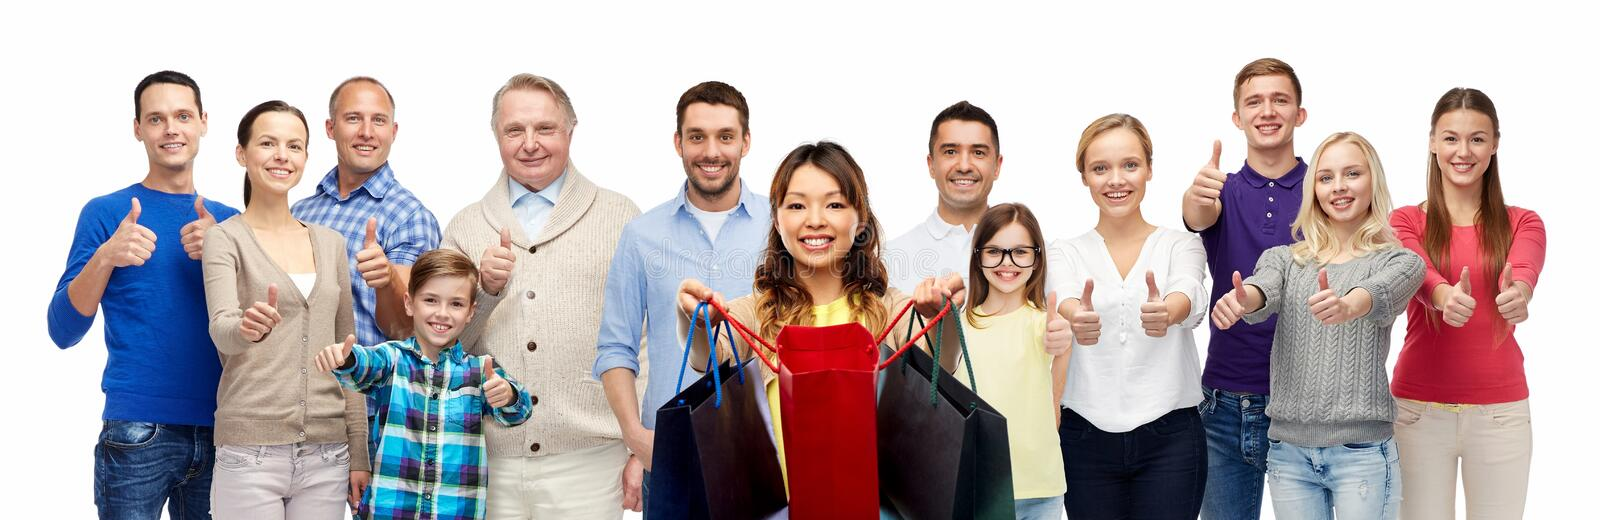 Woman with shopping bags and people show thumbs up royalty free stock photos